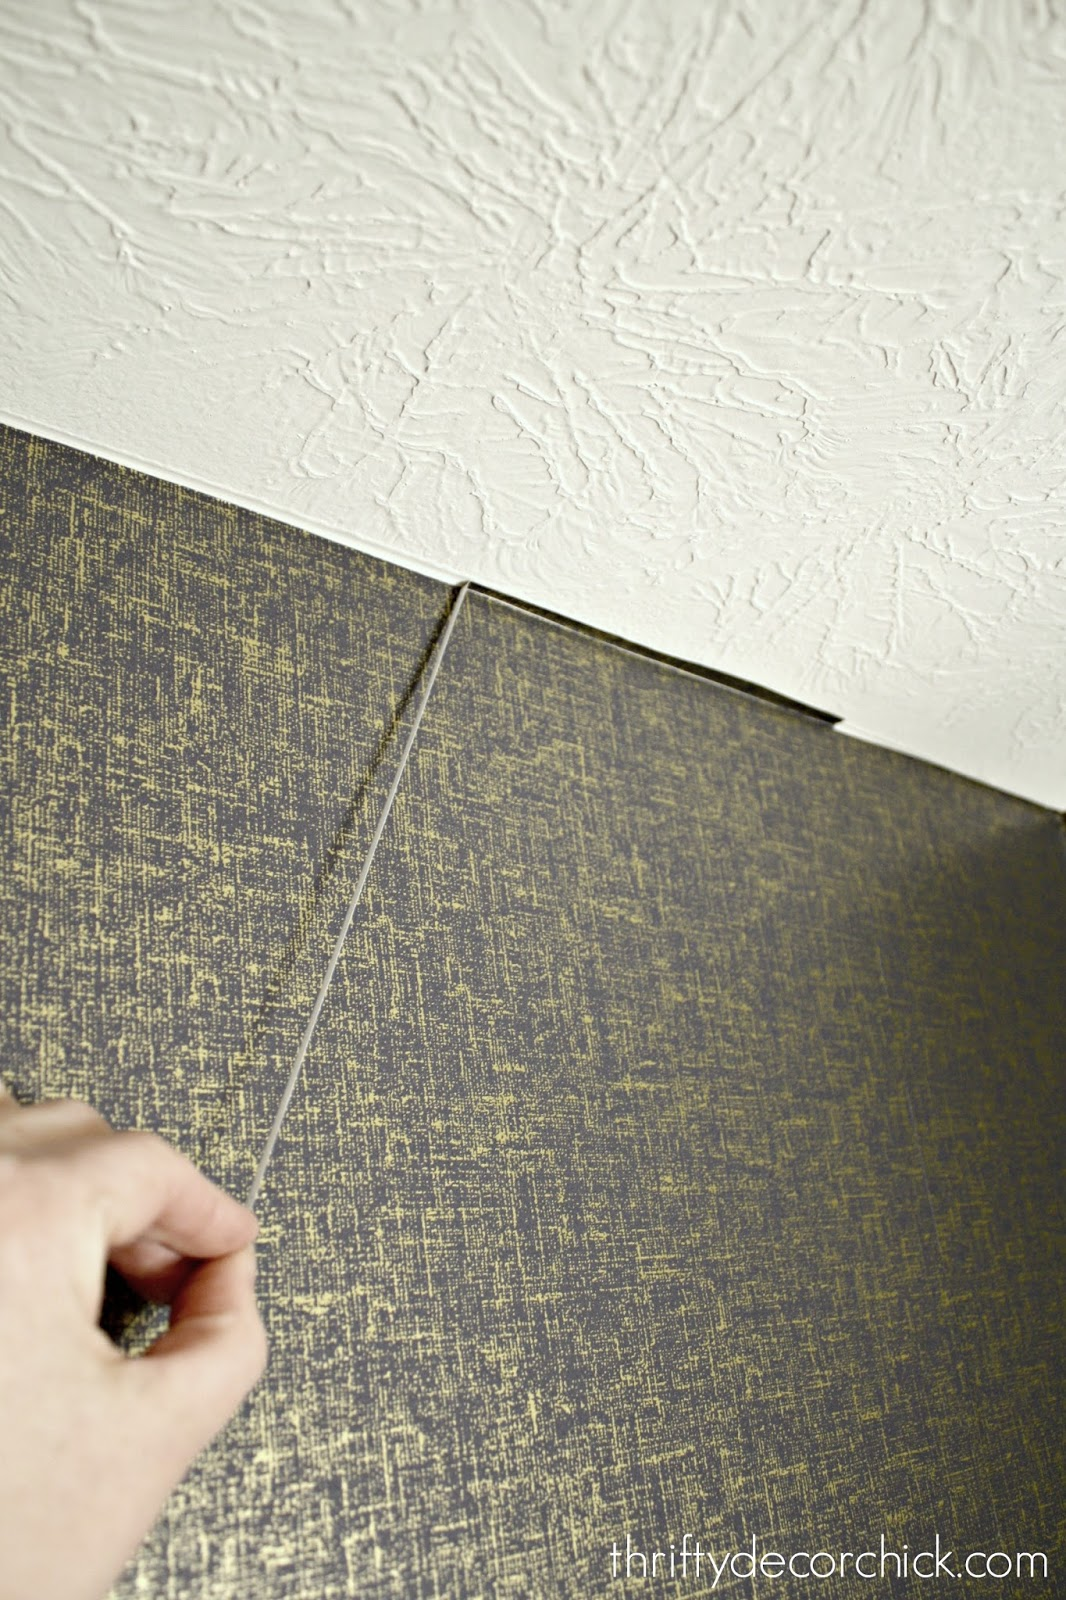 How to clean up edge on wallpaper